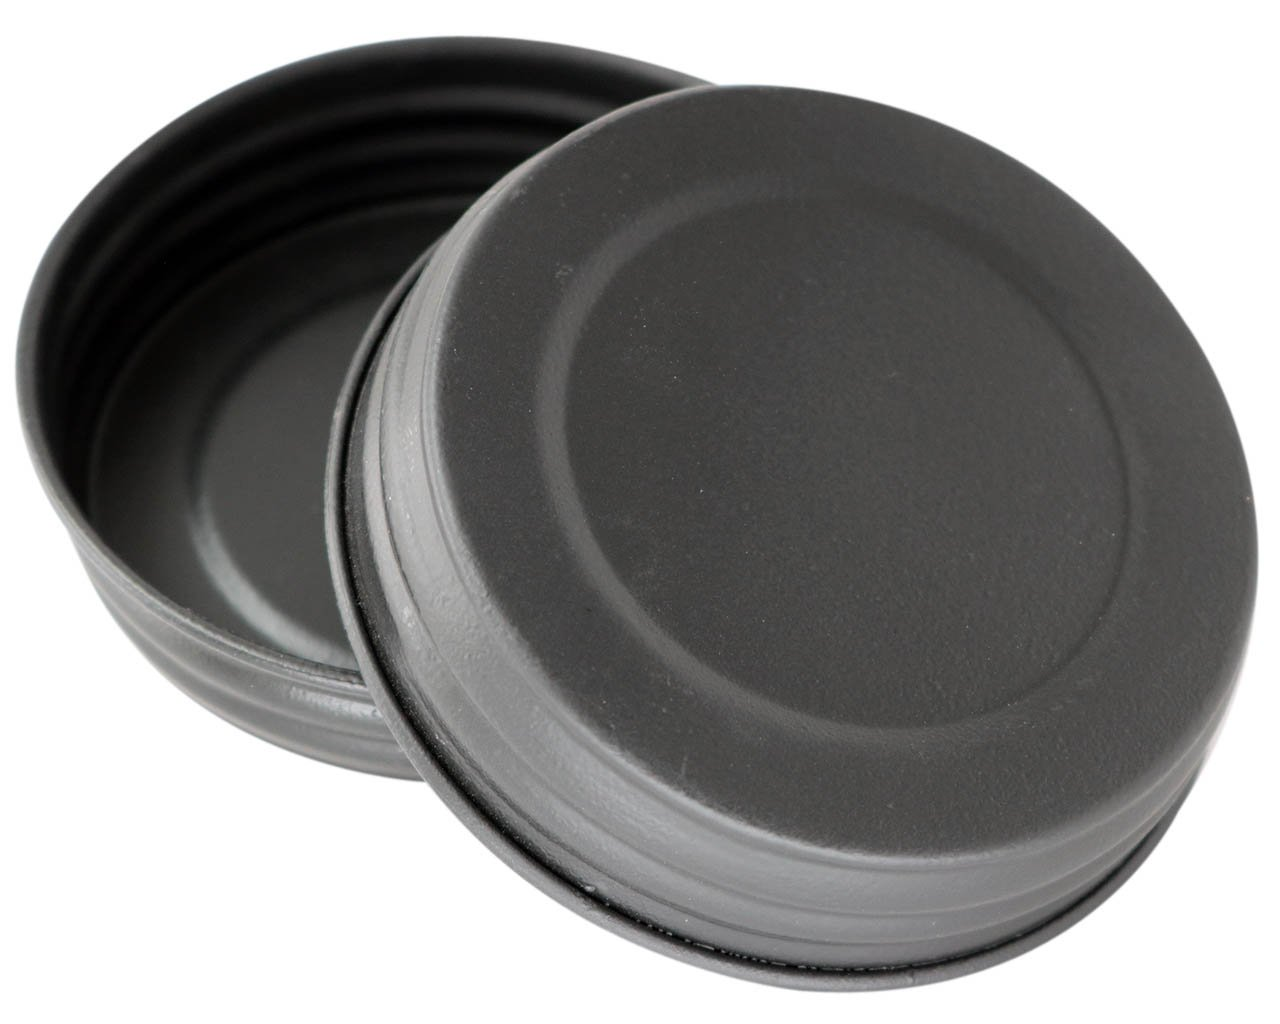 Black Vintage Reproduction Lids for Mason, Ball, Canning Jars, (4 Pack, Wide Mouth)